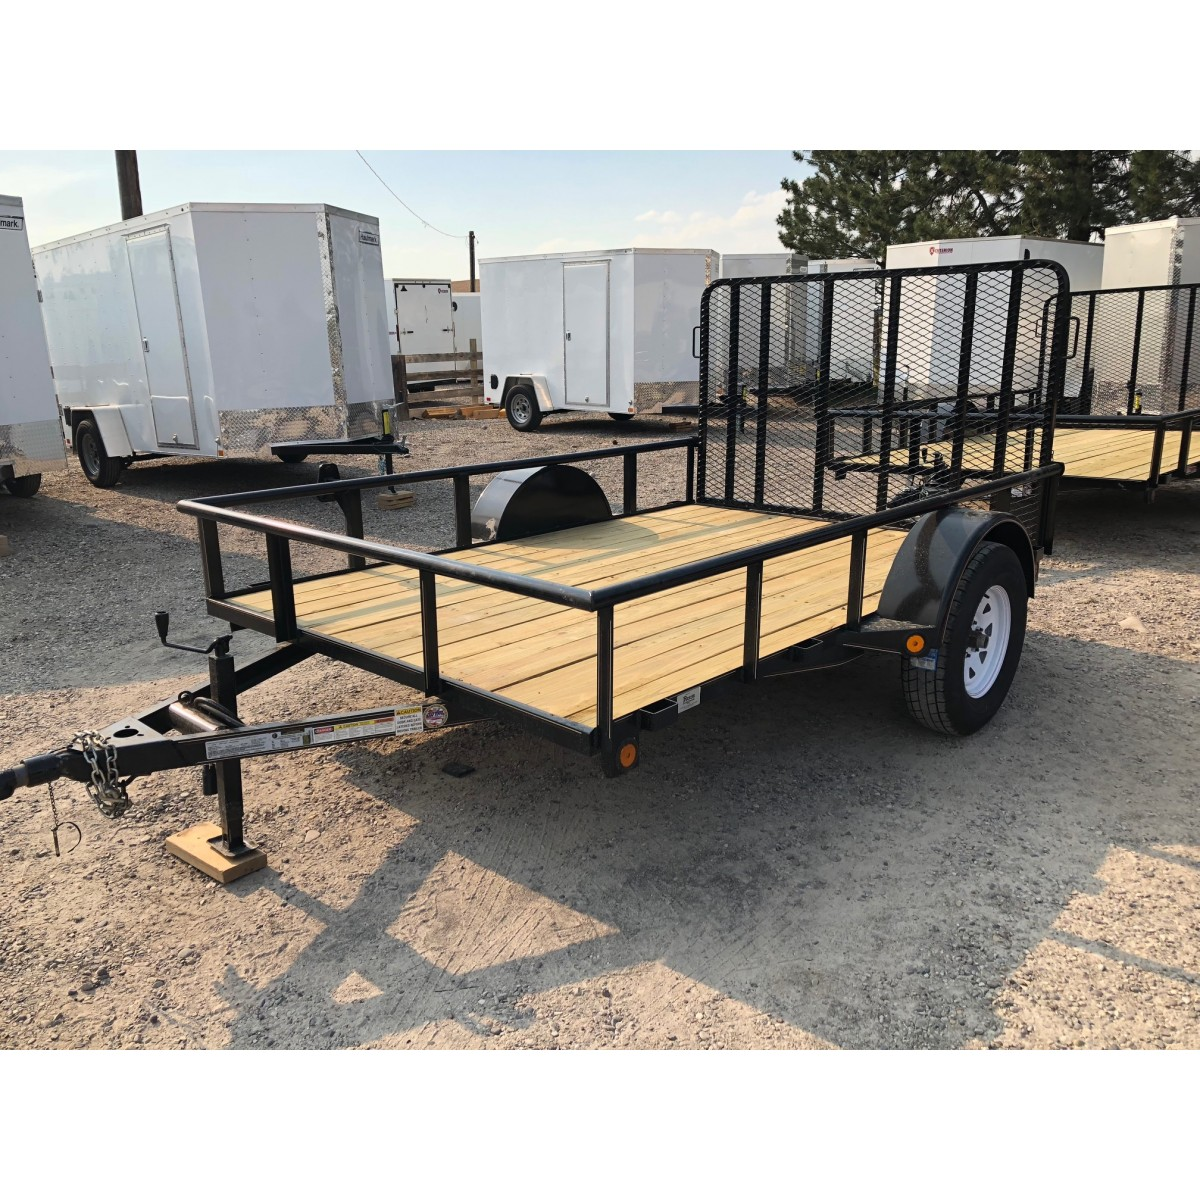 Utility Trailers: New 2018 GR 6x10 Utility Trailer W/ Rear Ramp Gate